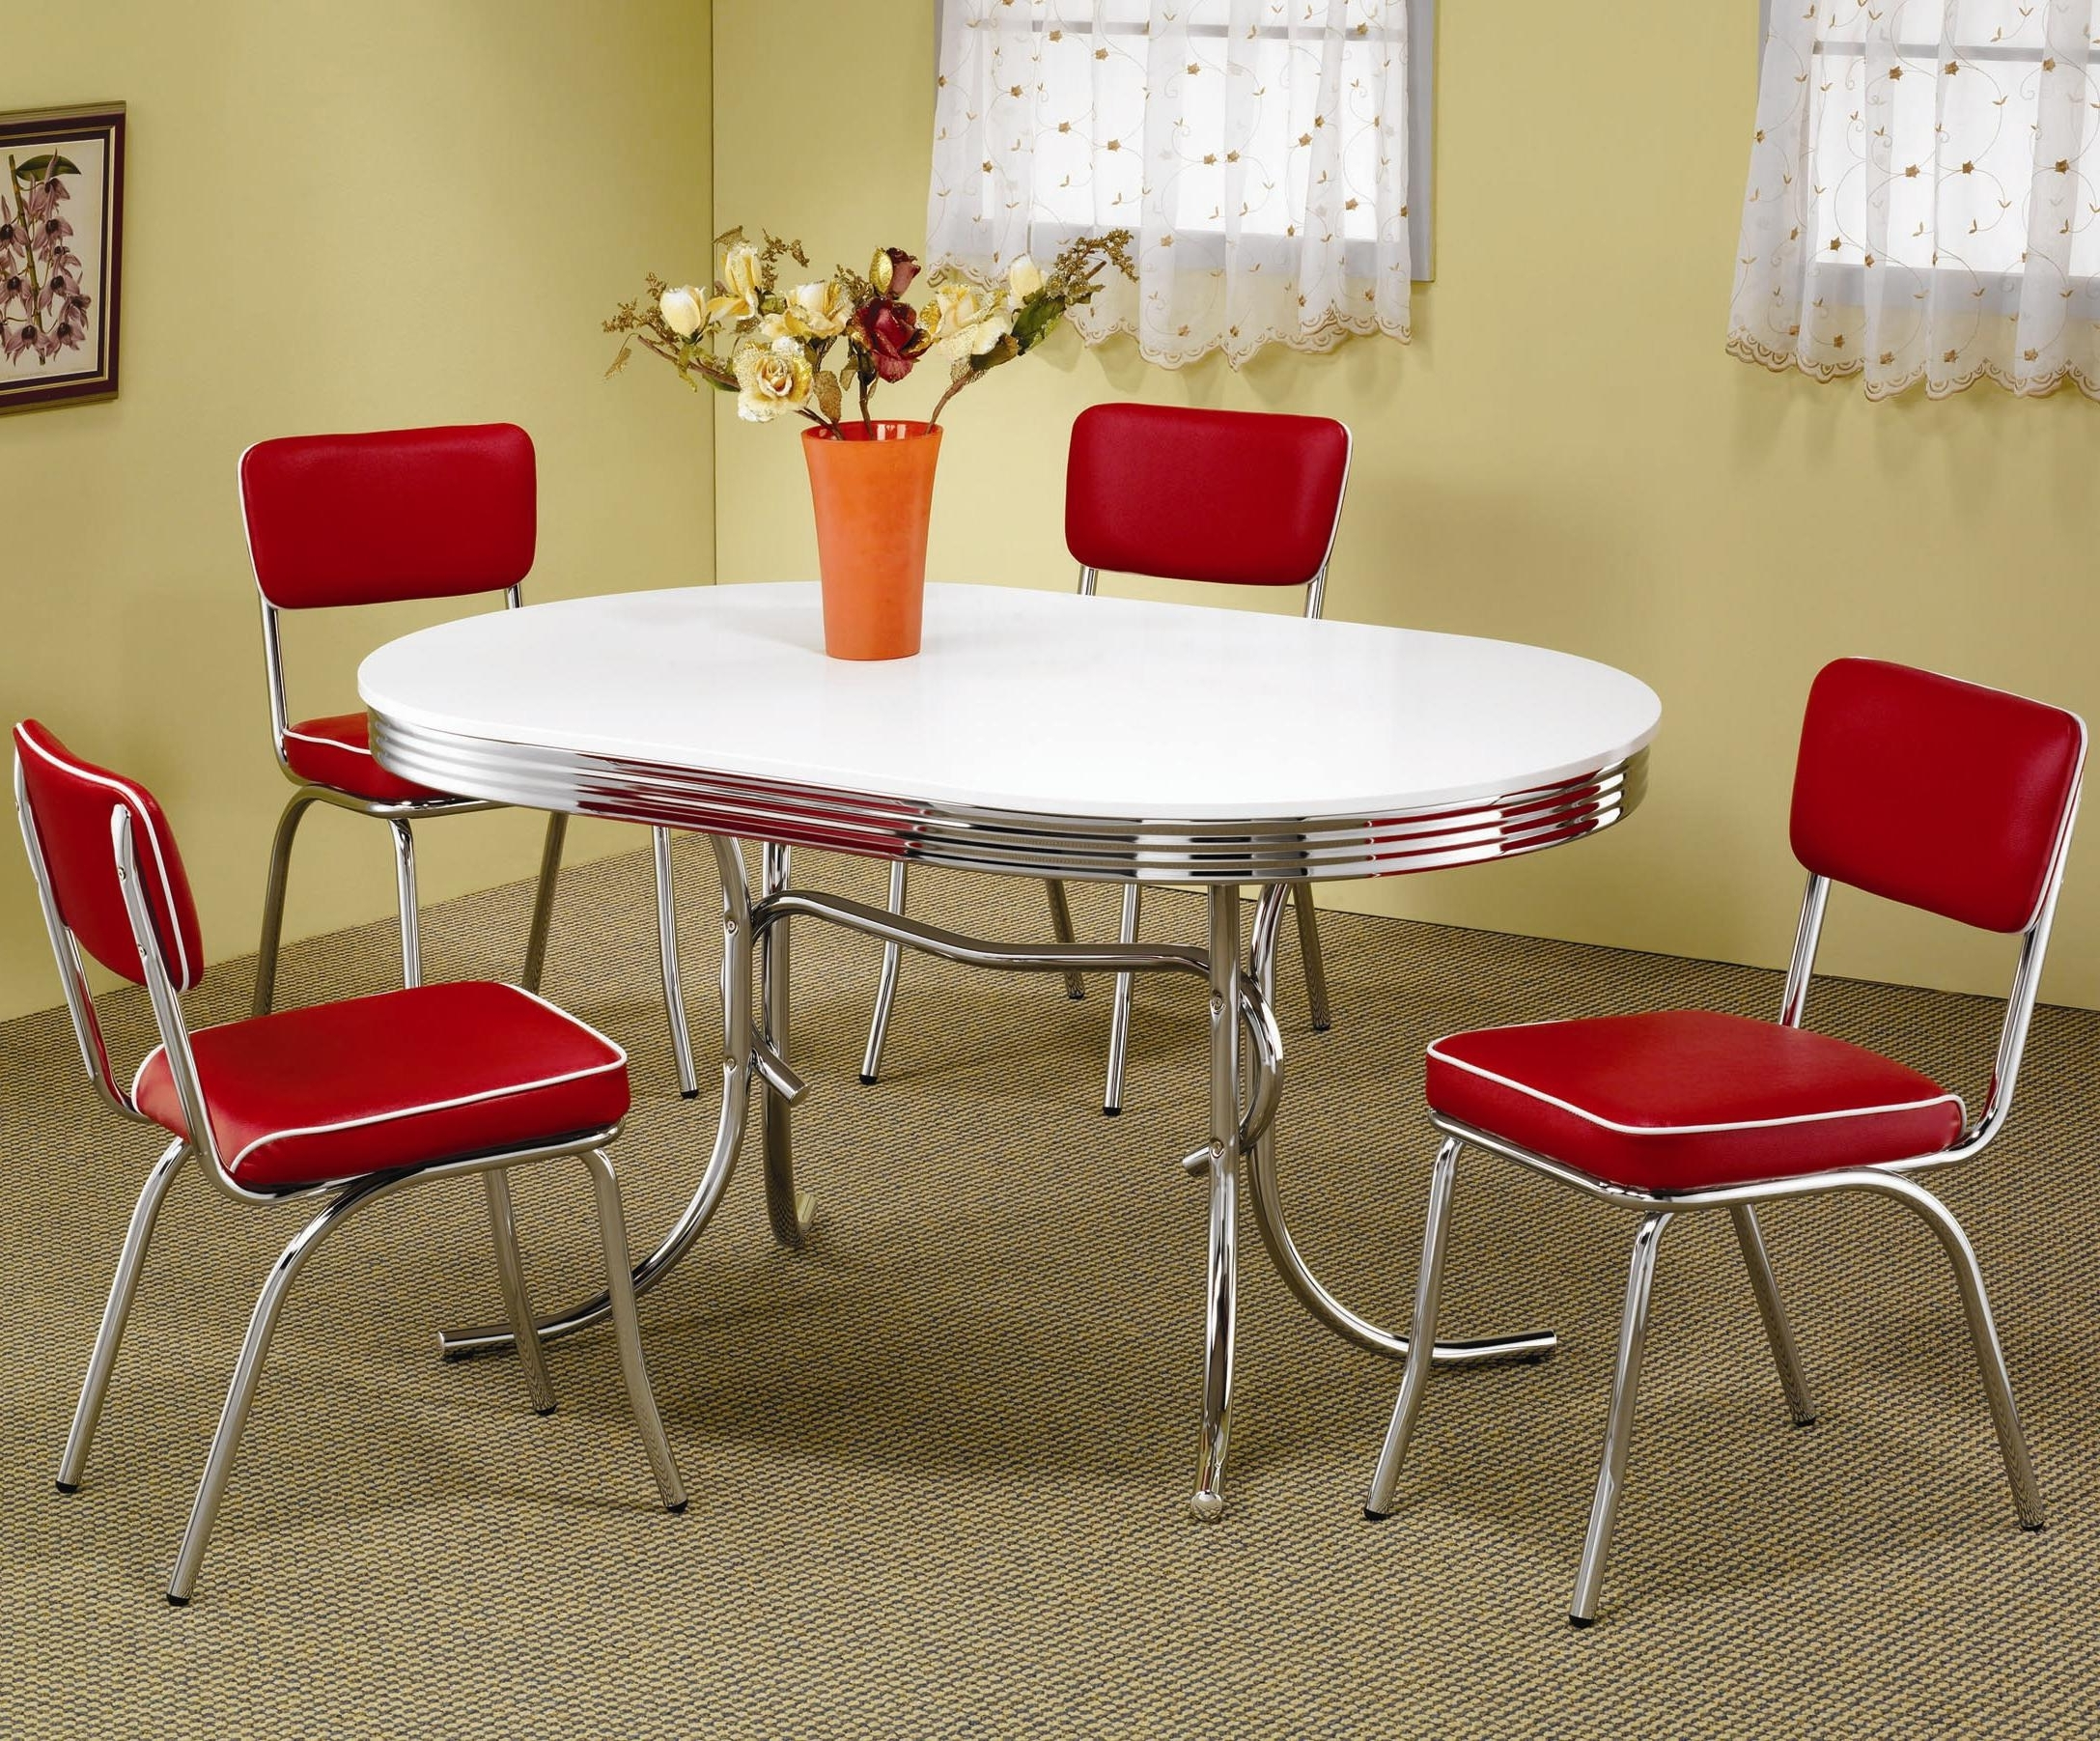 Value City intended for Chrome Dining Sets